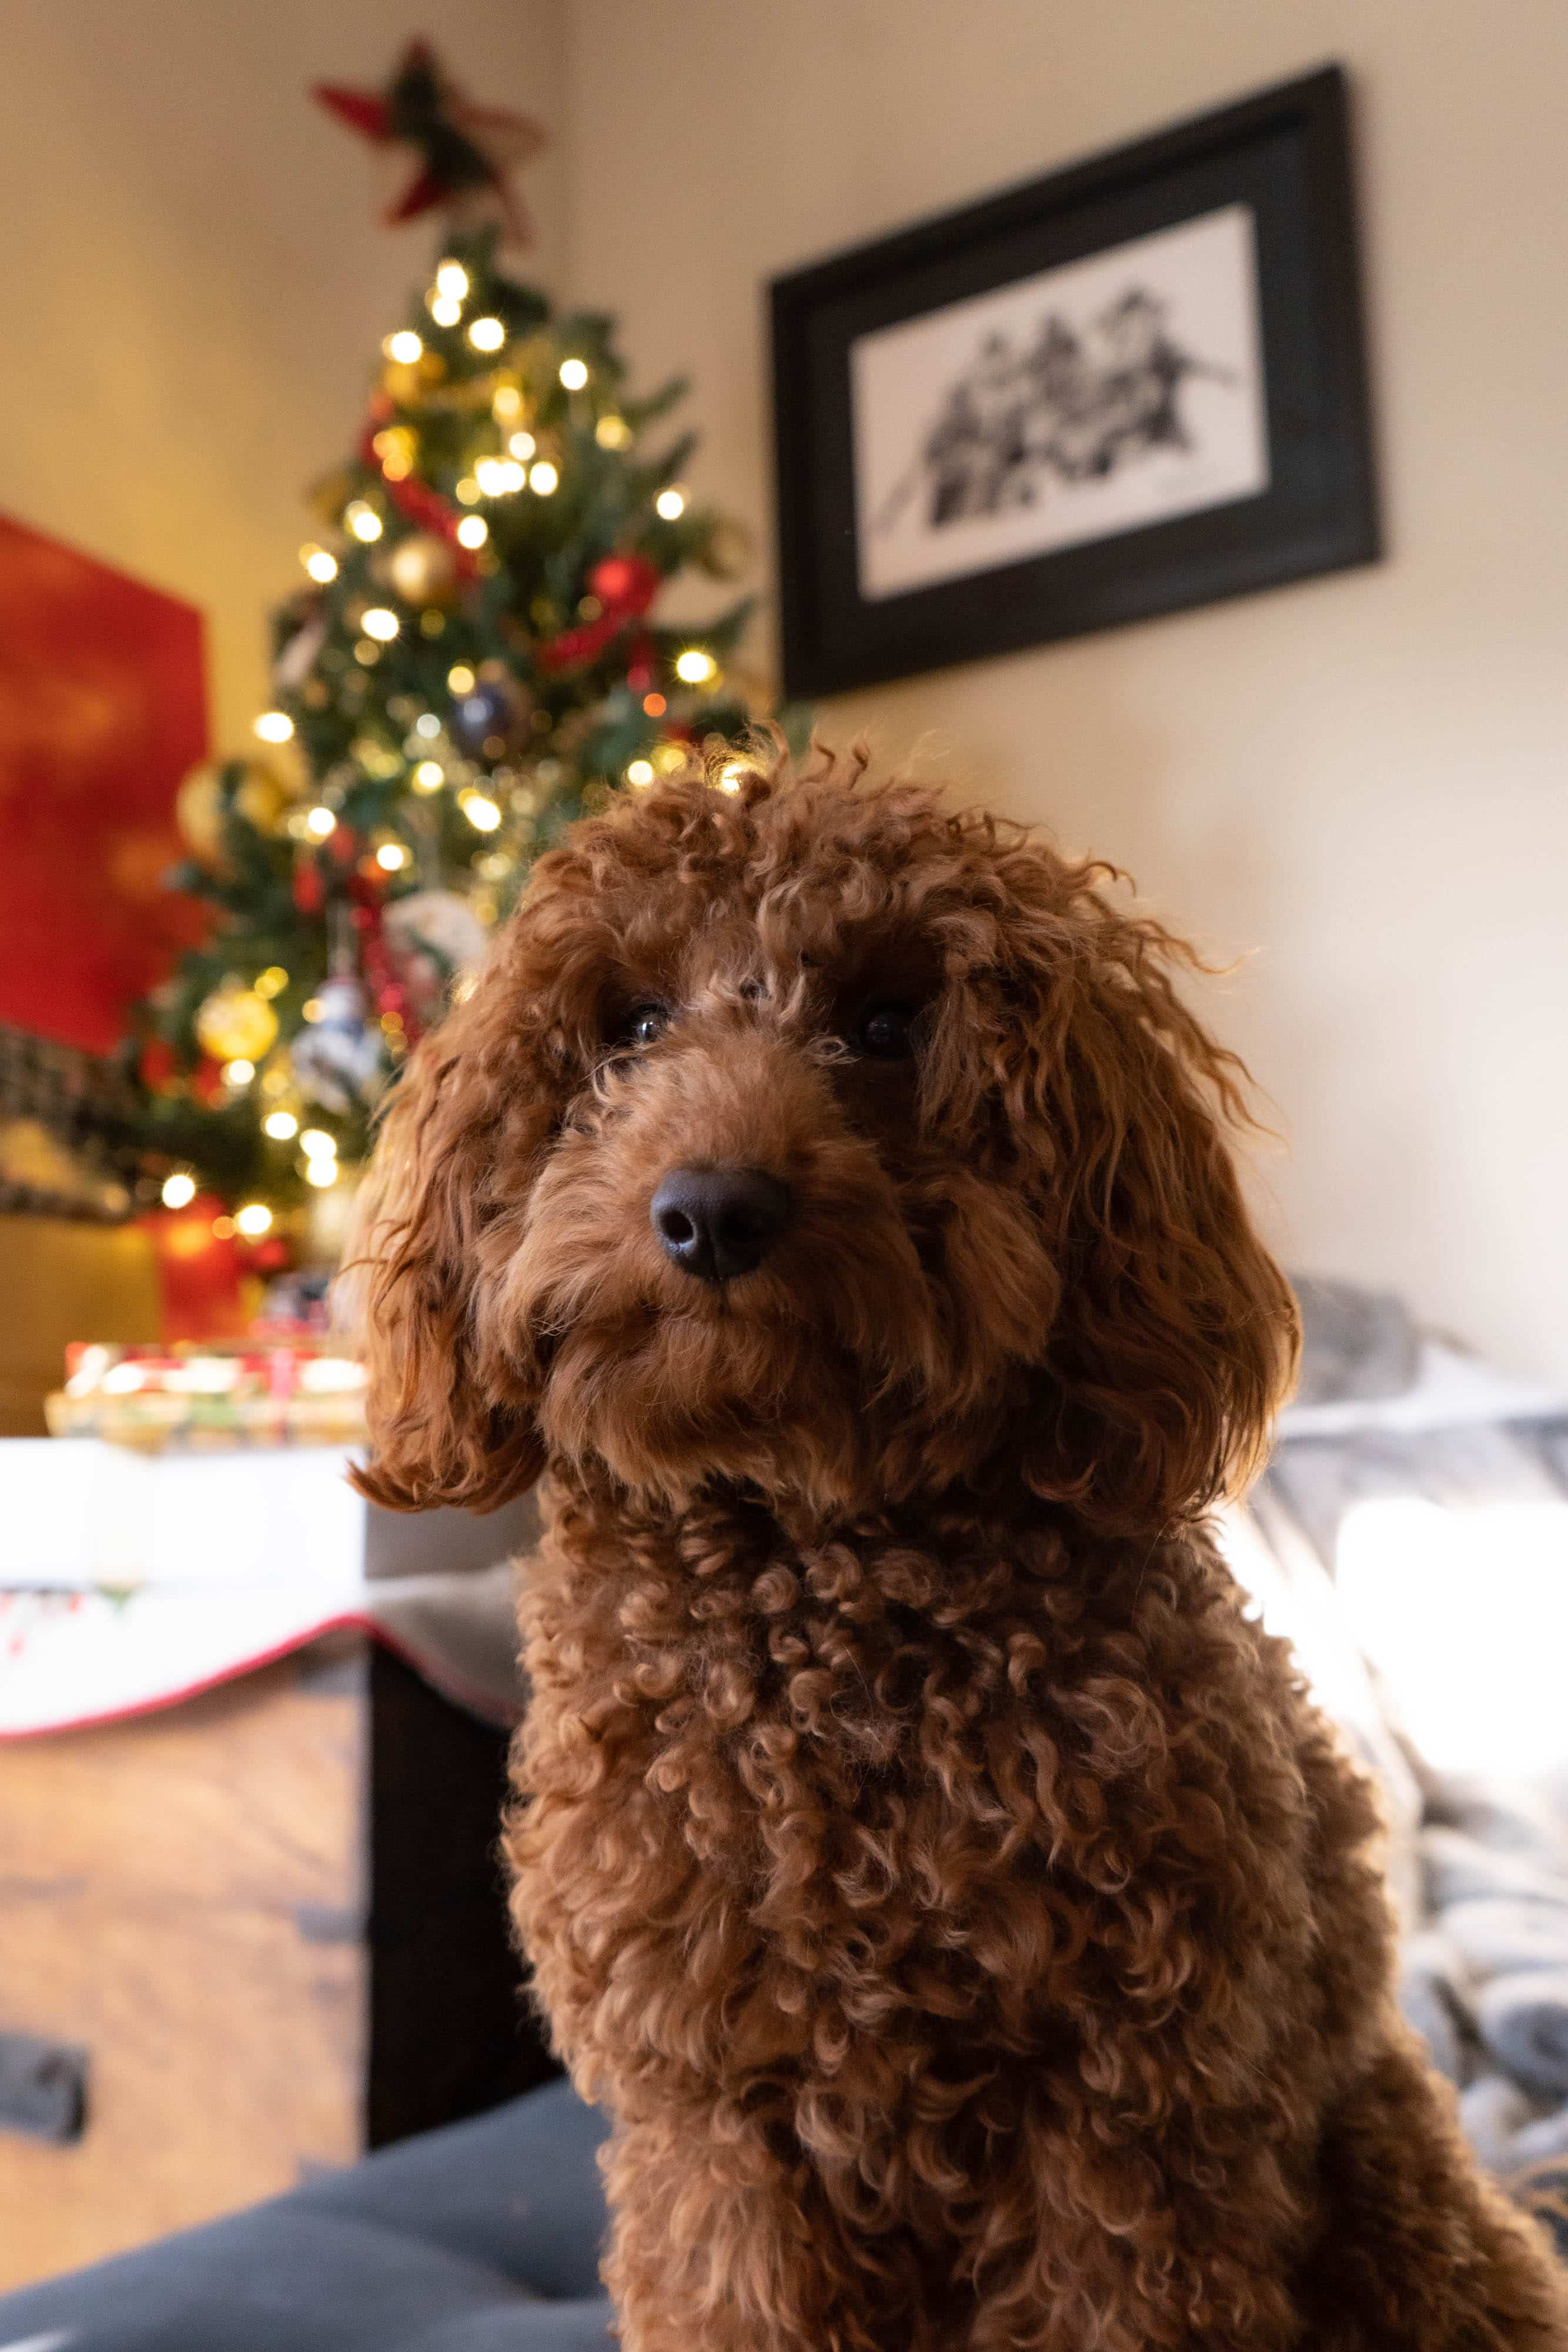 A golden doodle standing in front of a Christmas tree